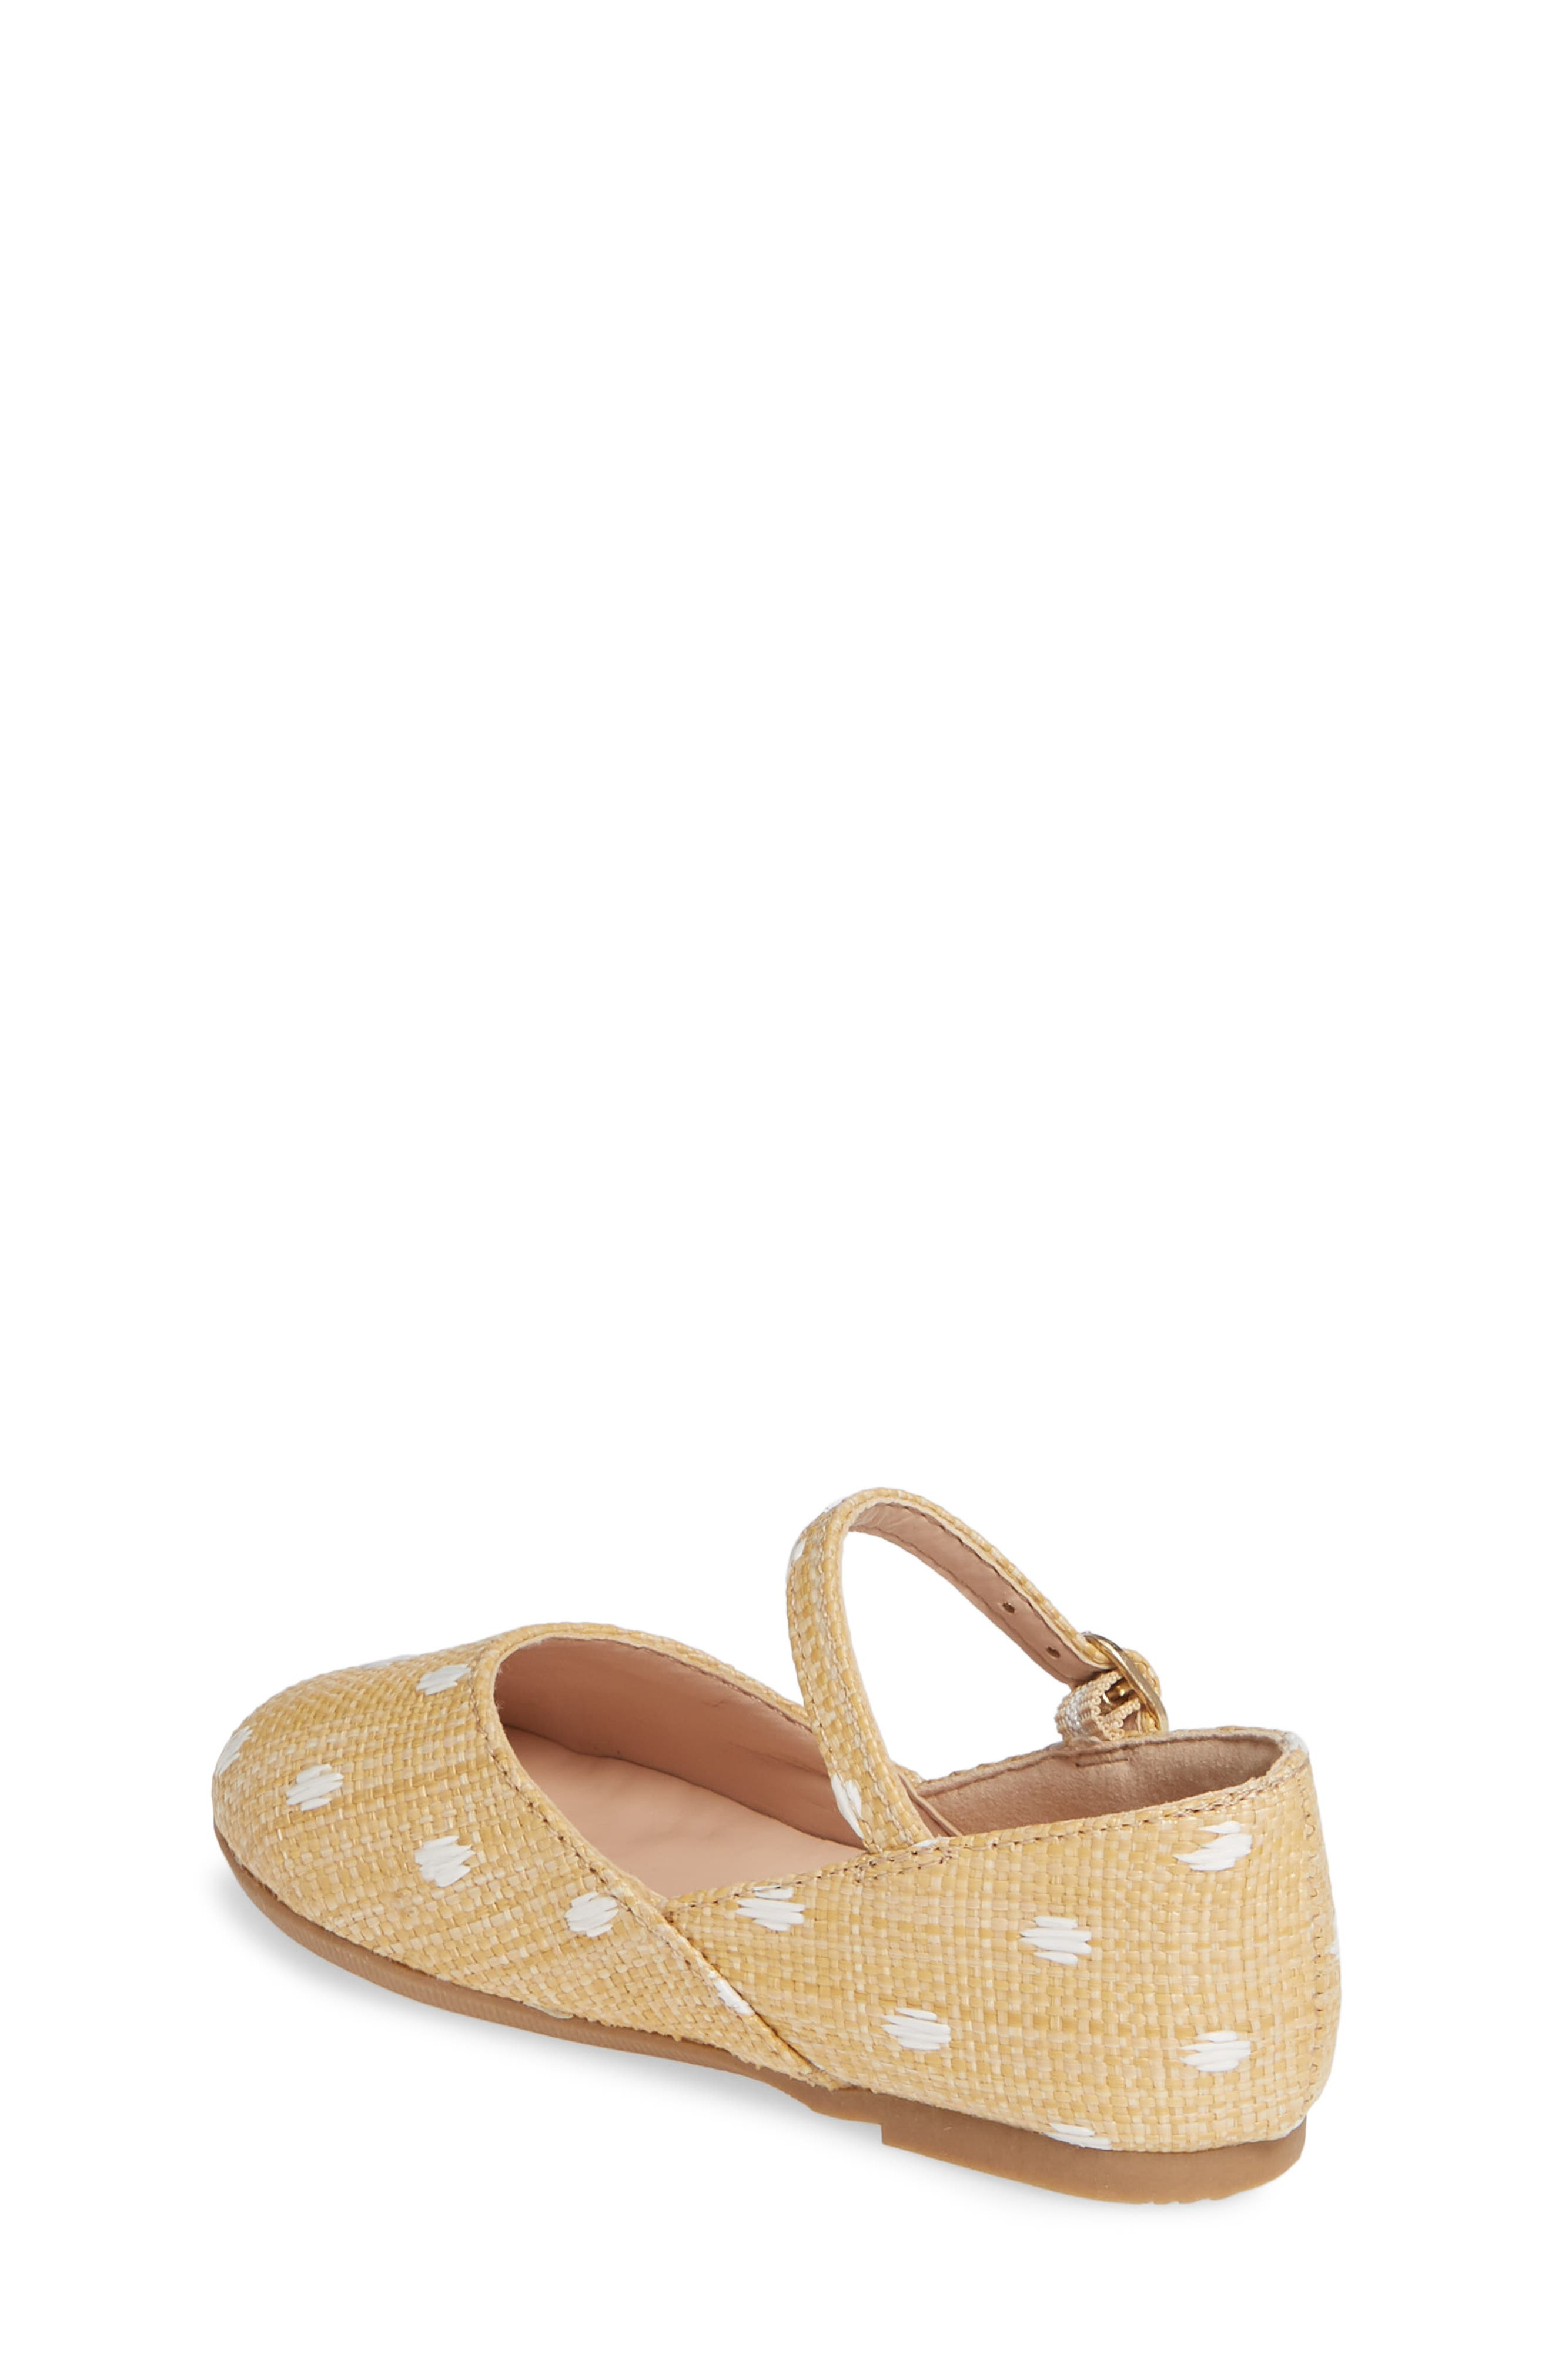 SOMETHING NAVY, Brighton Raffia Mary Jane Flat, Alternate thumbnail 2, color, NATURAL FABRIC